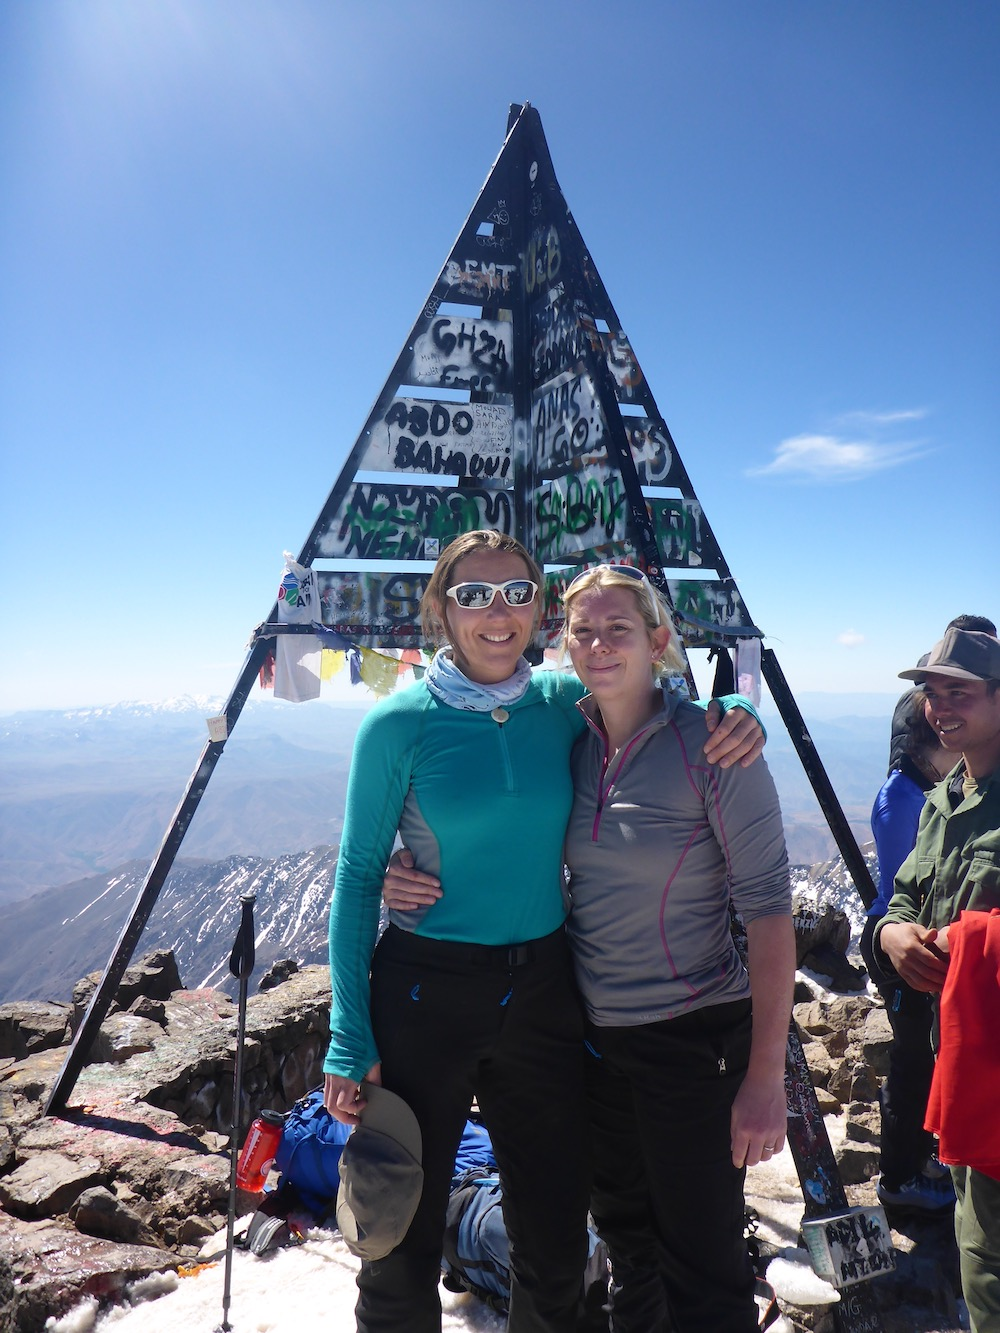 LEADING EXPEDITIONS TO CLIMB MT TOUBKAL, MOROCCO